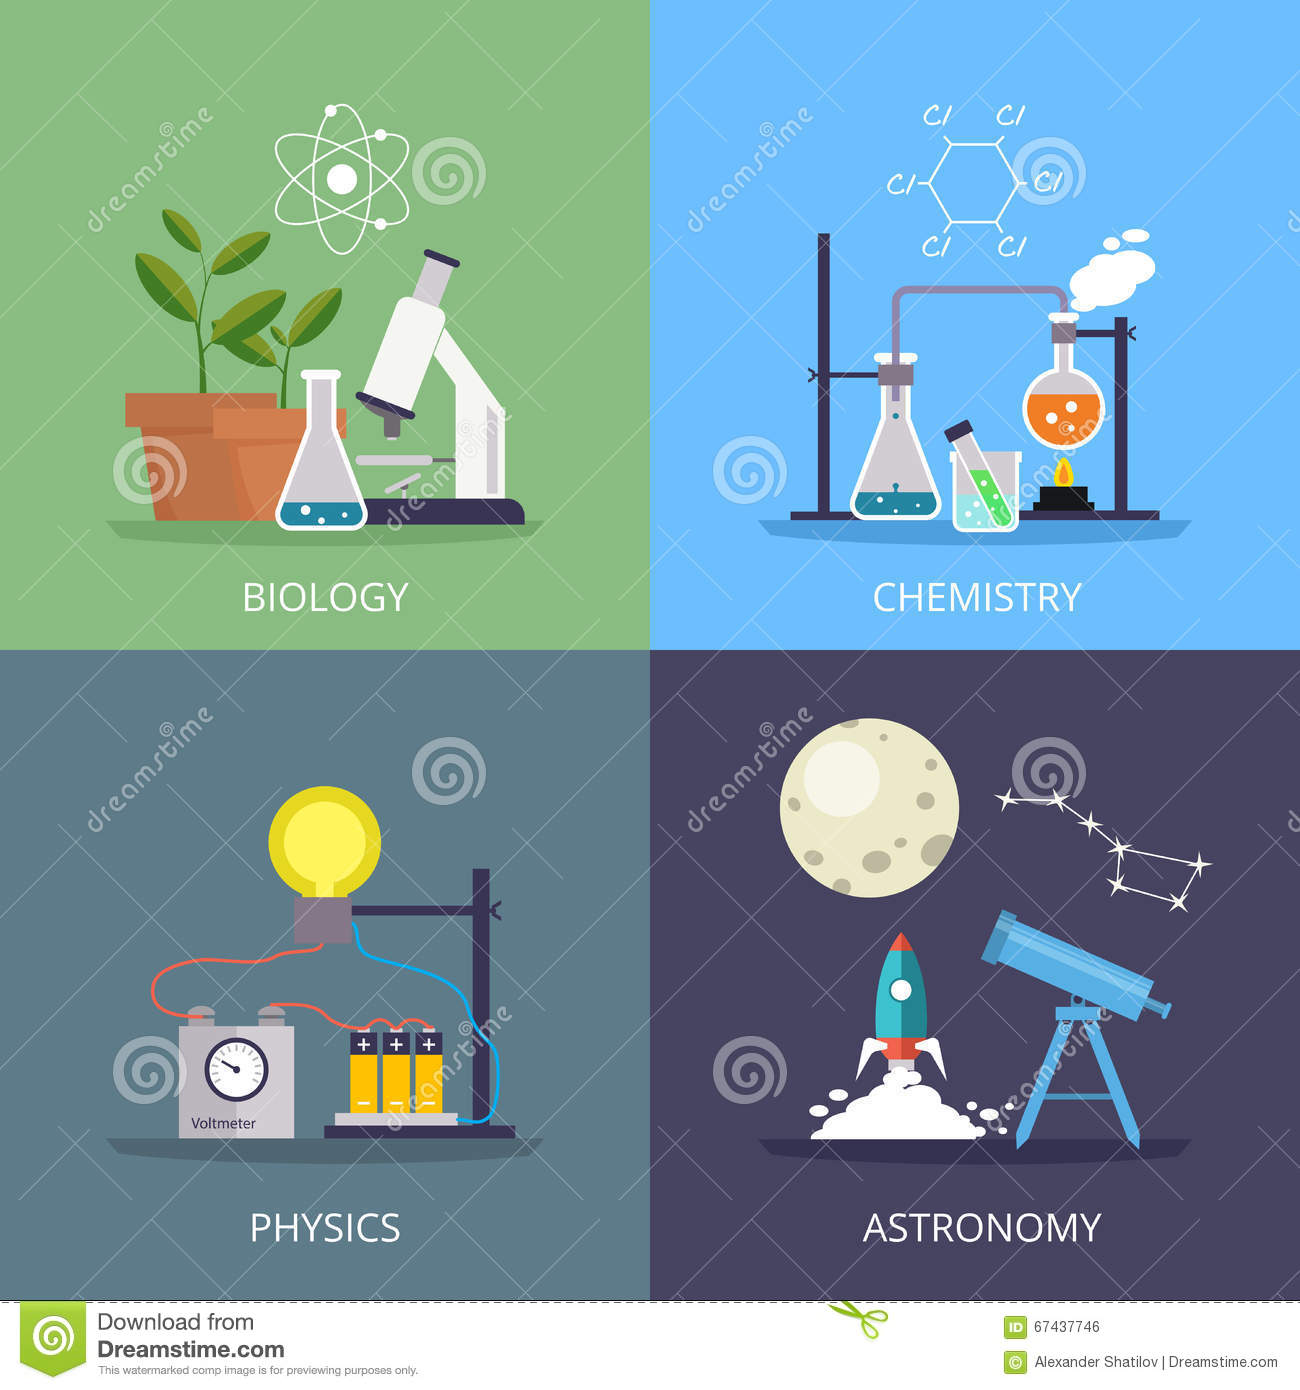 chemistry and biology Chemistry describes phenomena at the level above physics my fave's biology btw i like natural systems, far more wonderfully complex than the grossly reduced systems of chemistry and physics.